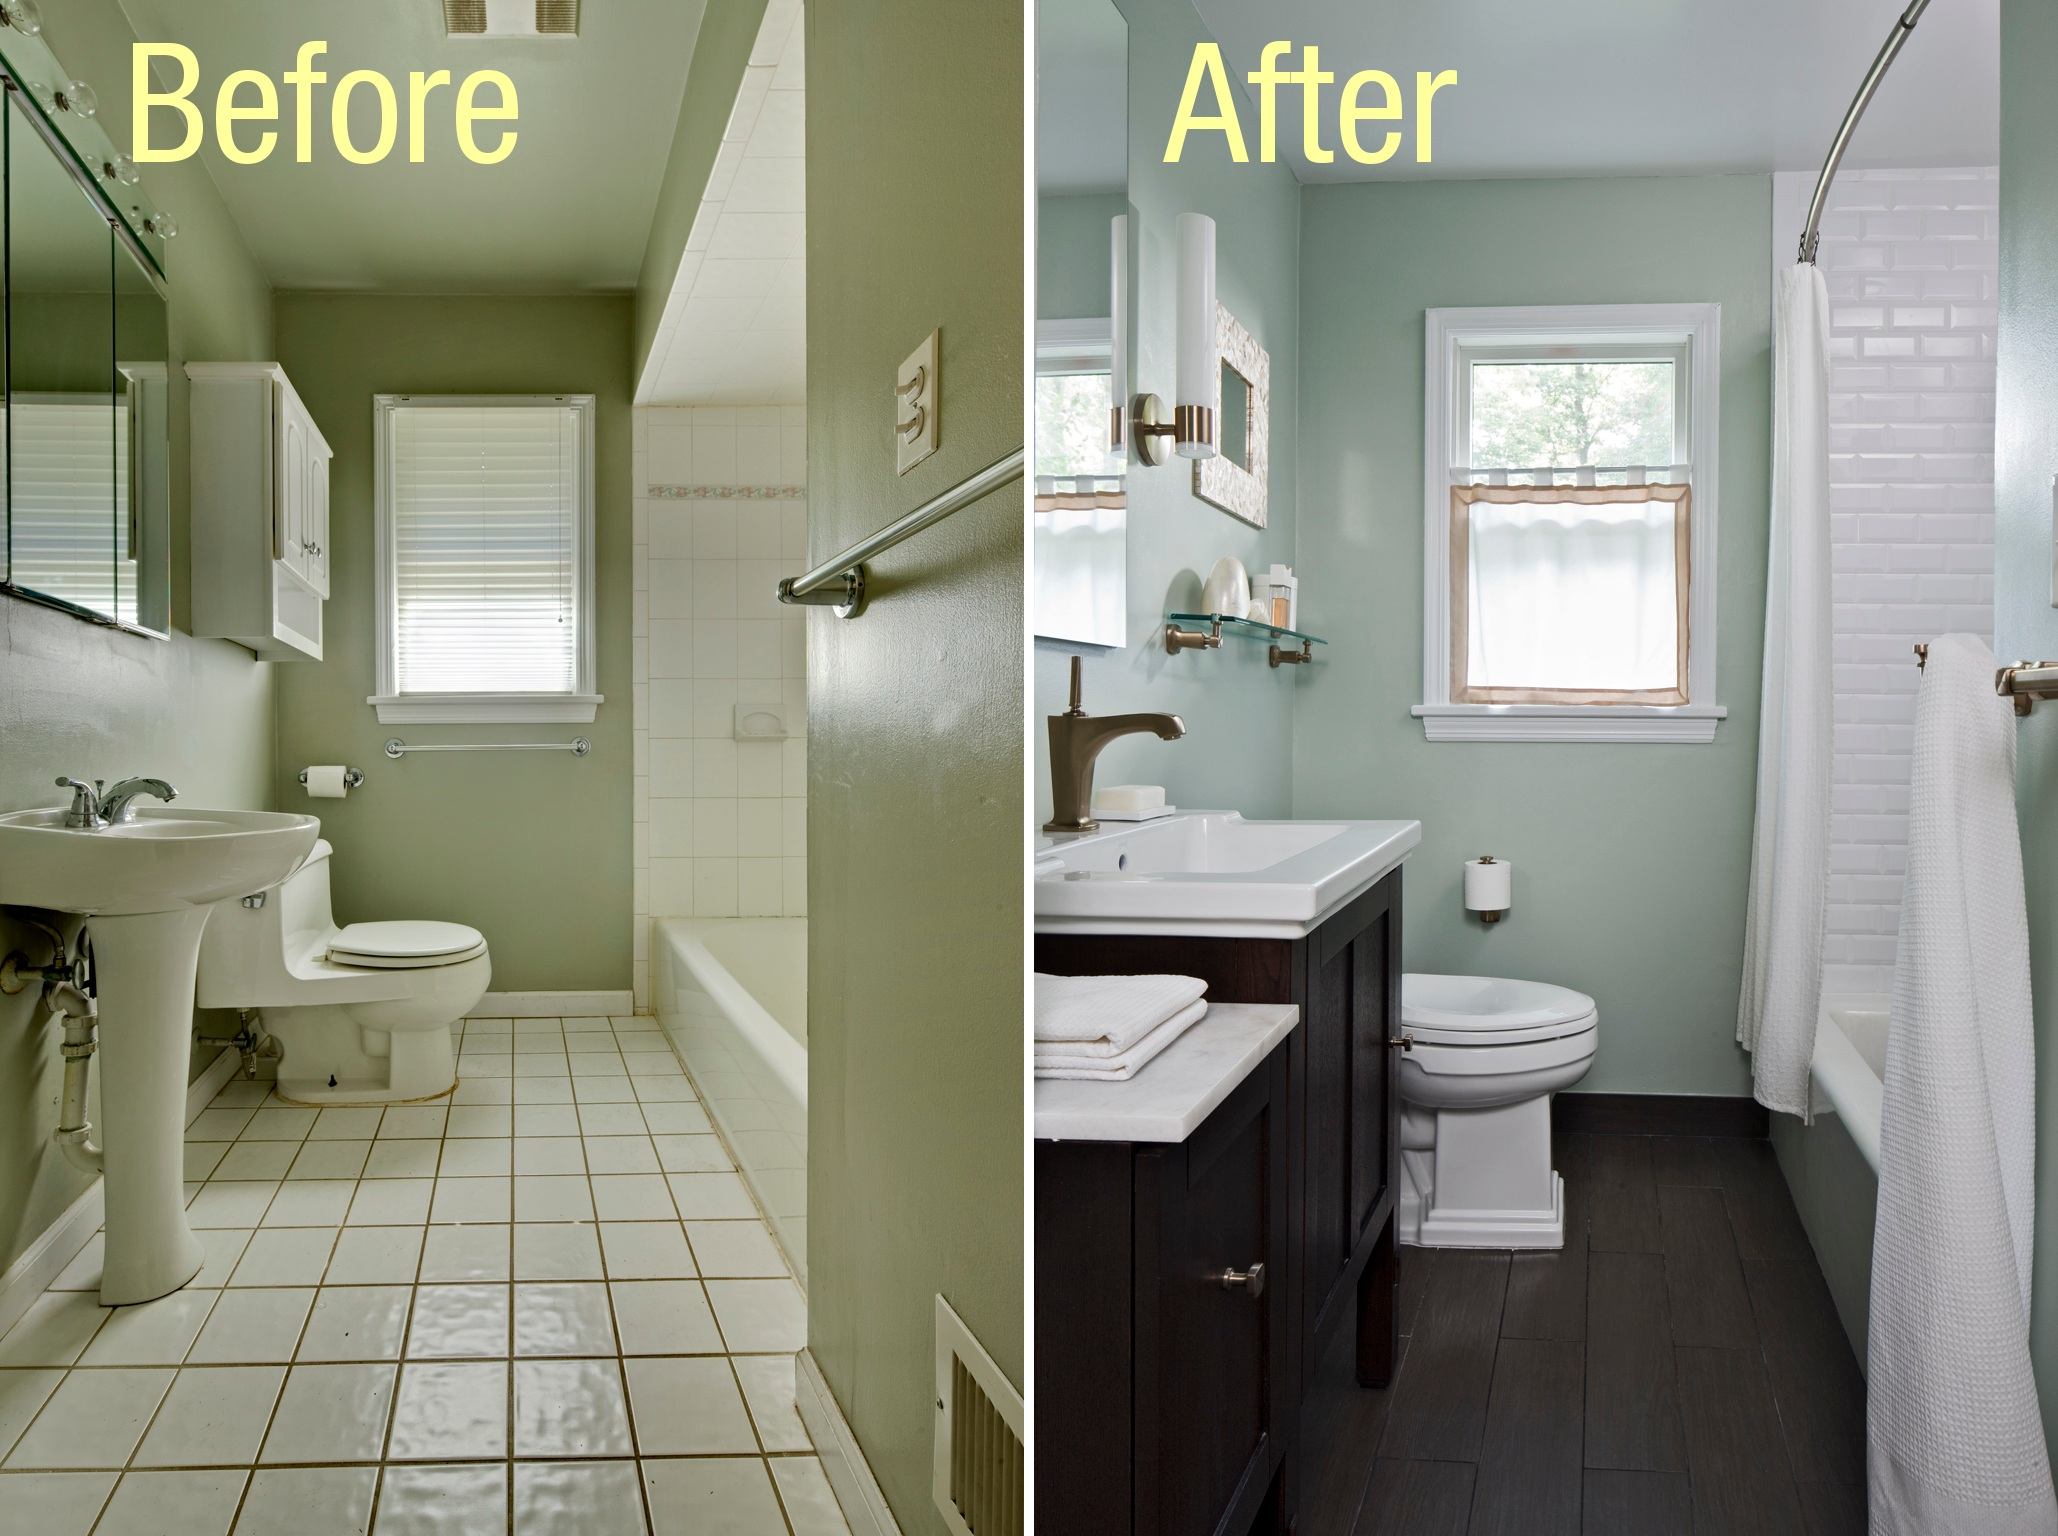 Bathroom Makeover For Elderly handyman wichita ks | handyman wichita ks | property management